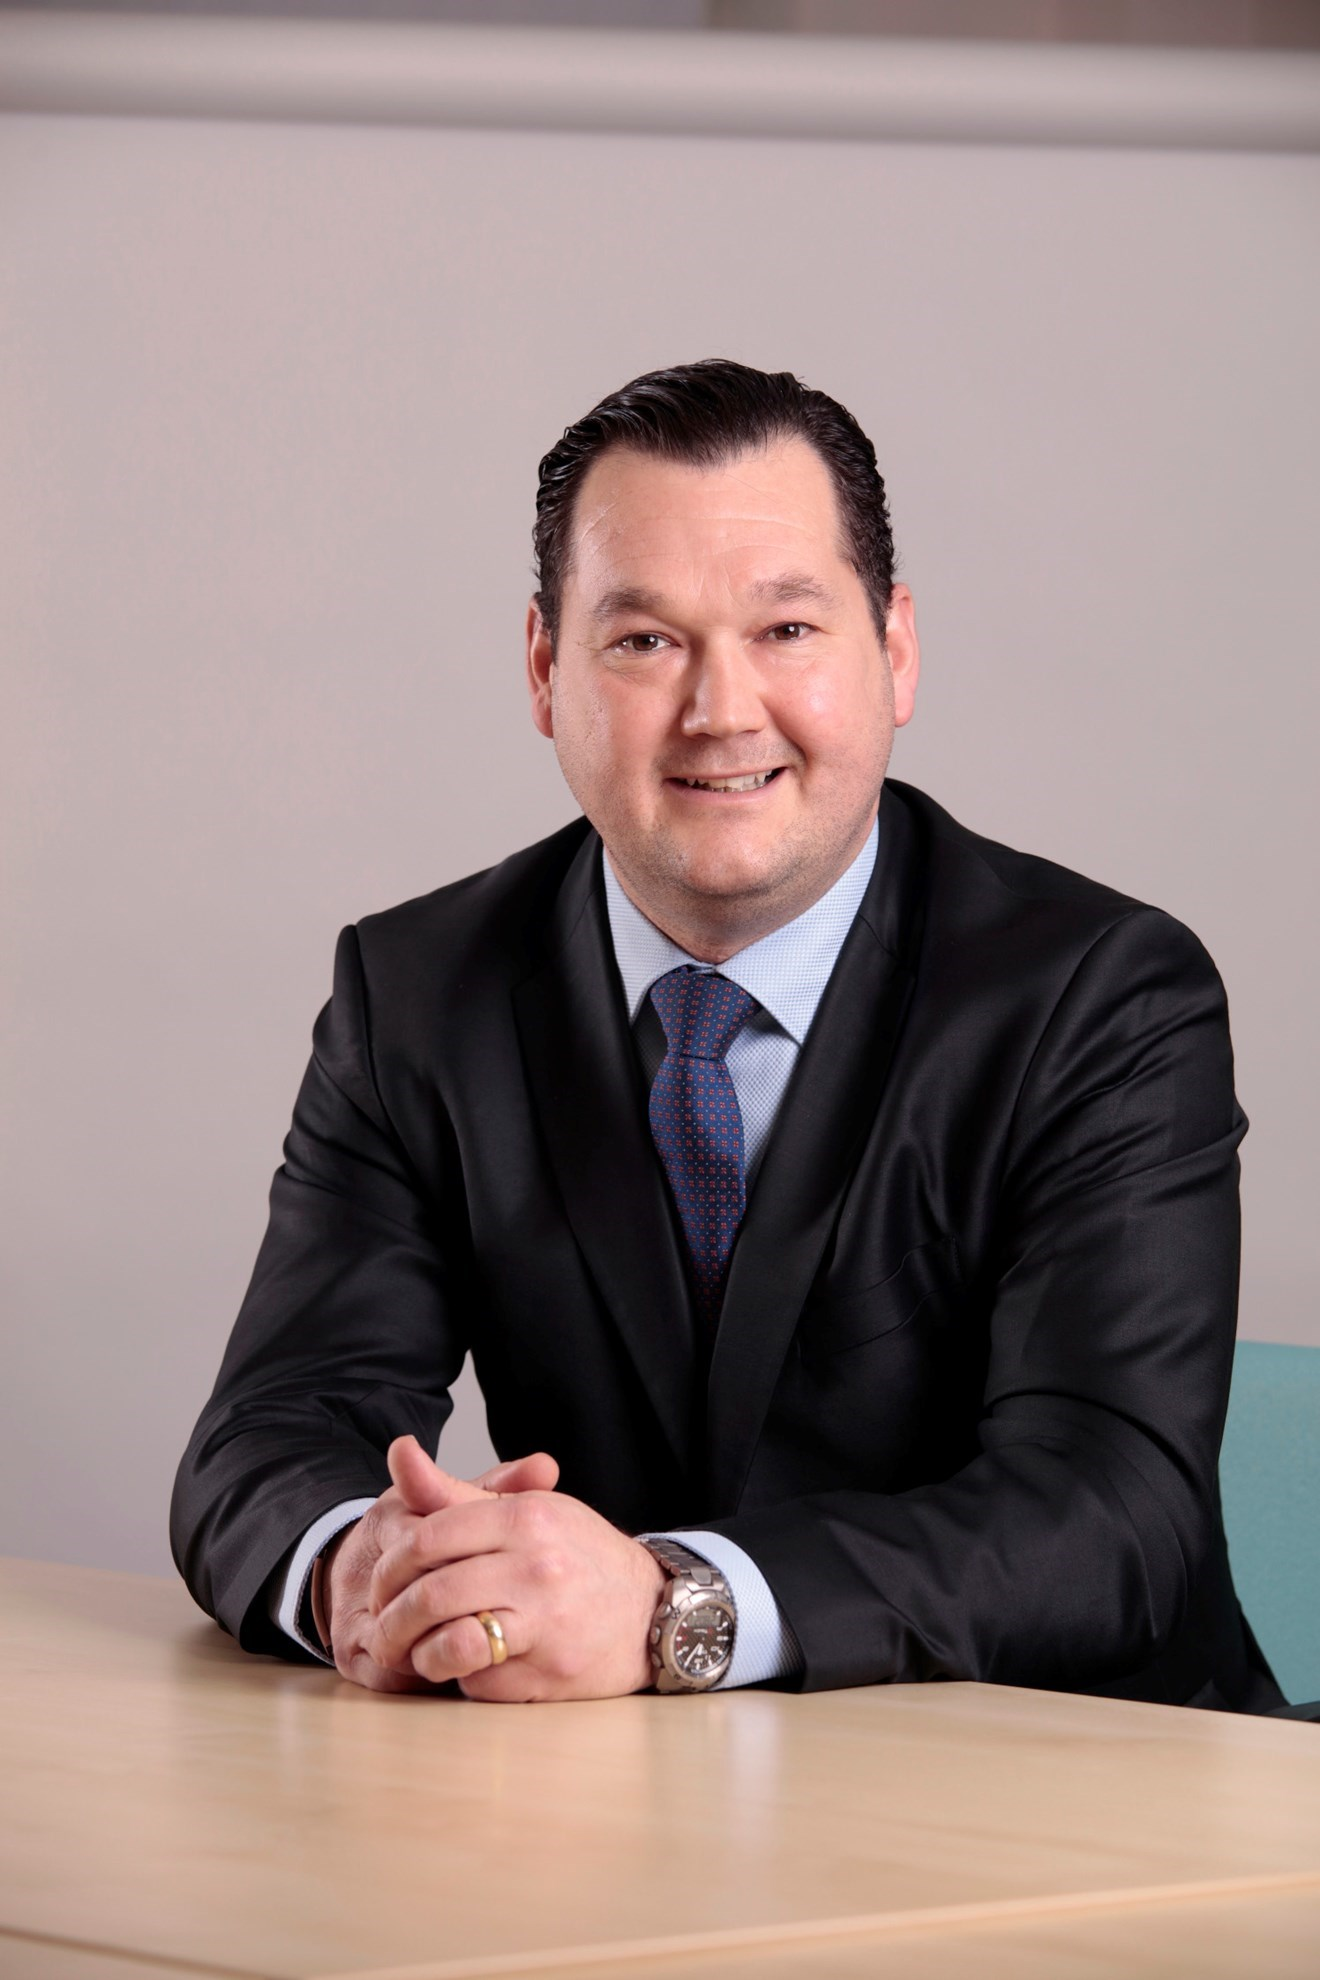 Matt Kent, Director of Operations for its Rail Automation business in the UK.